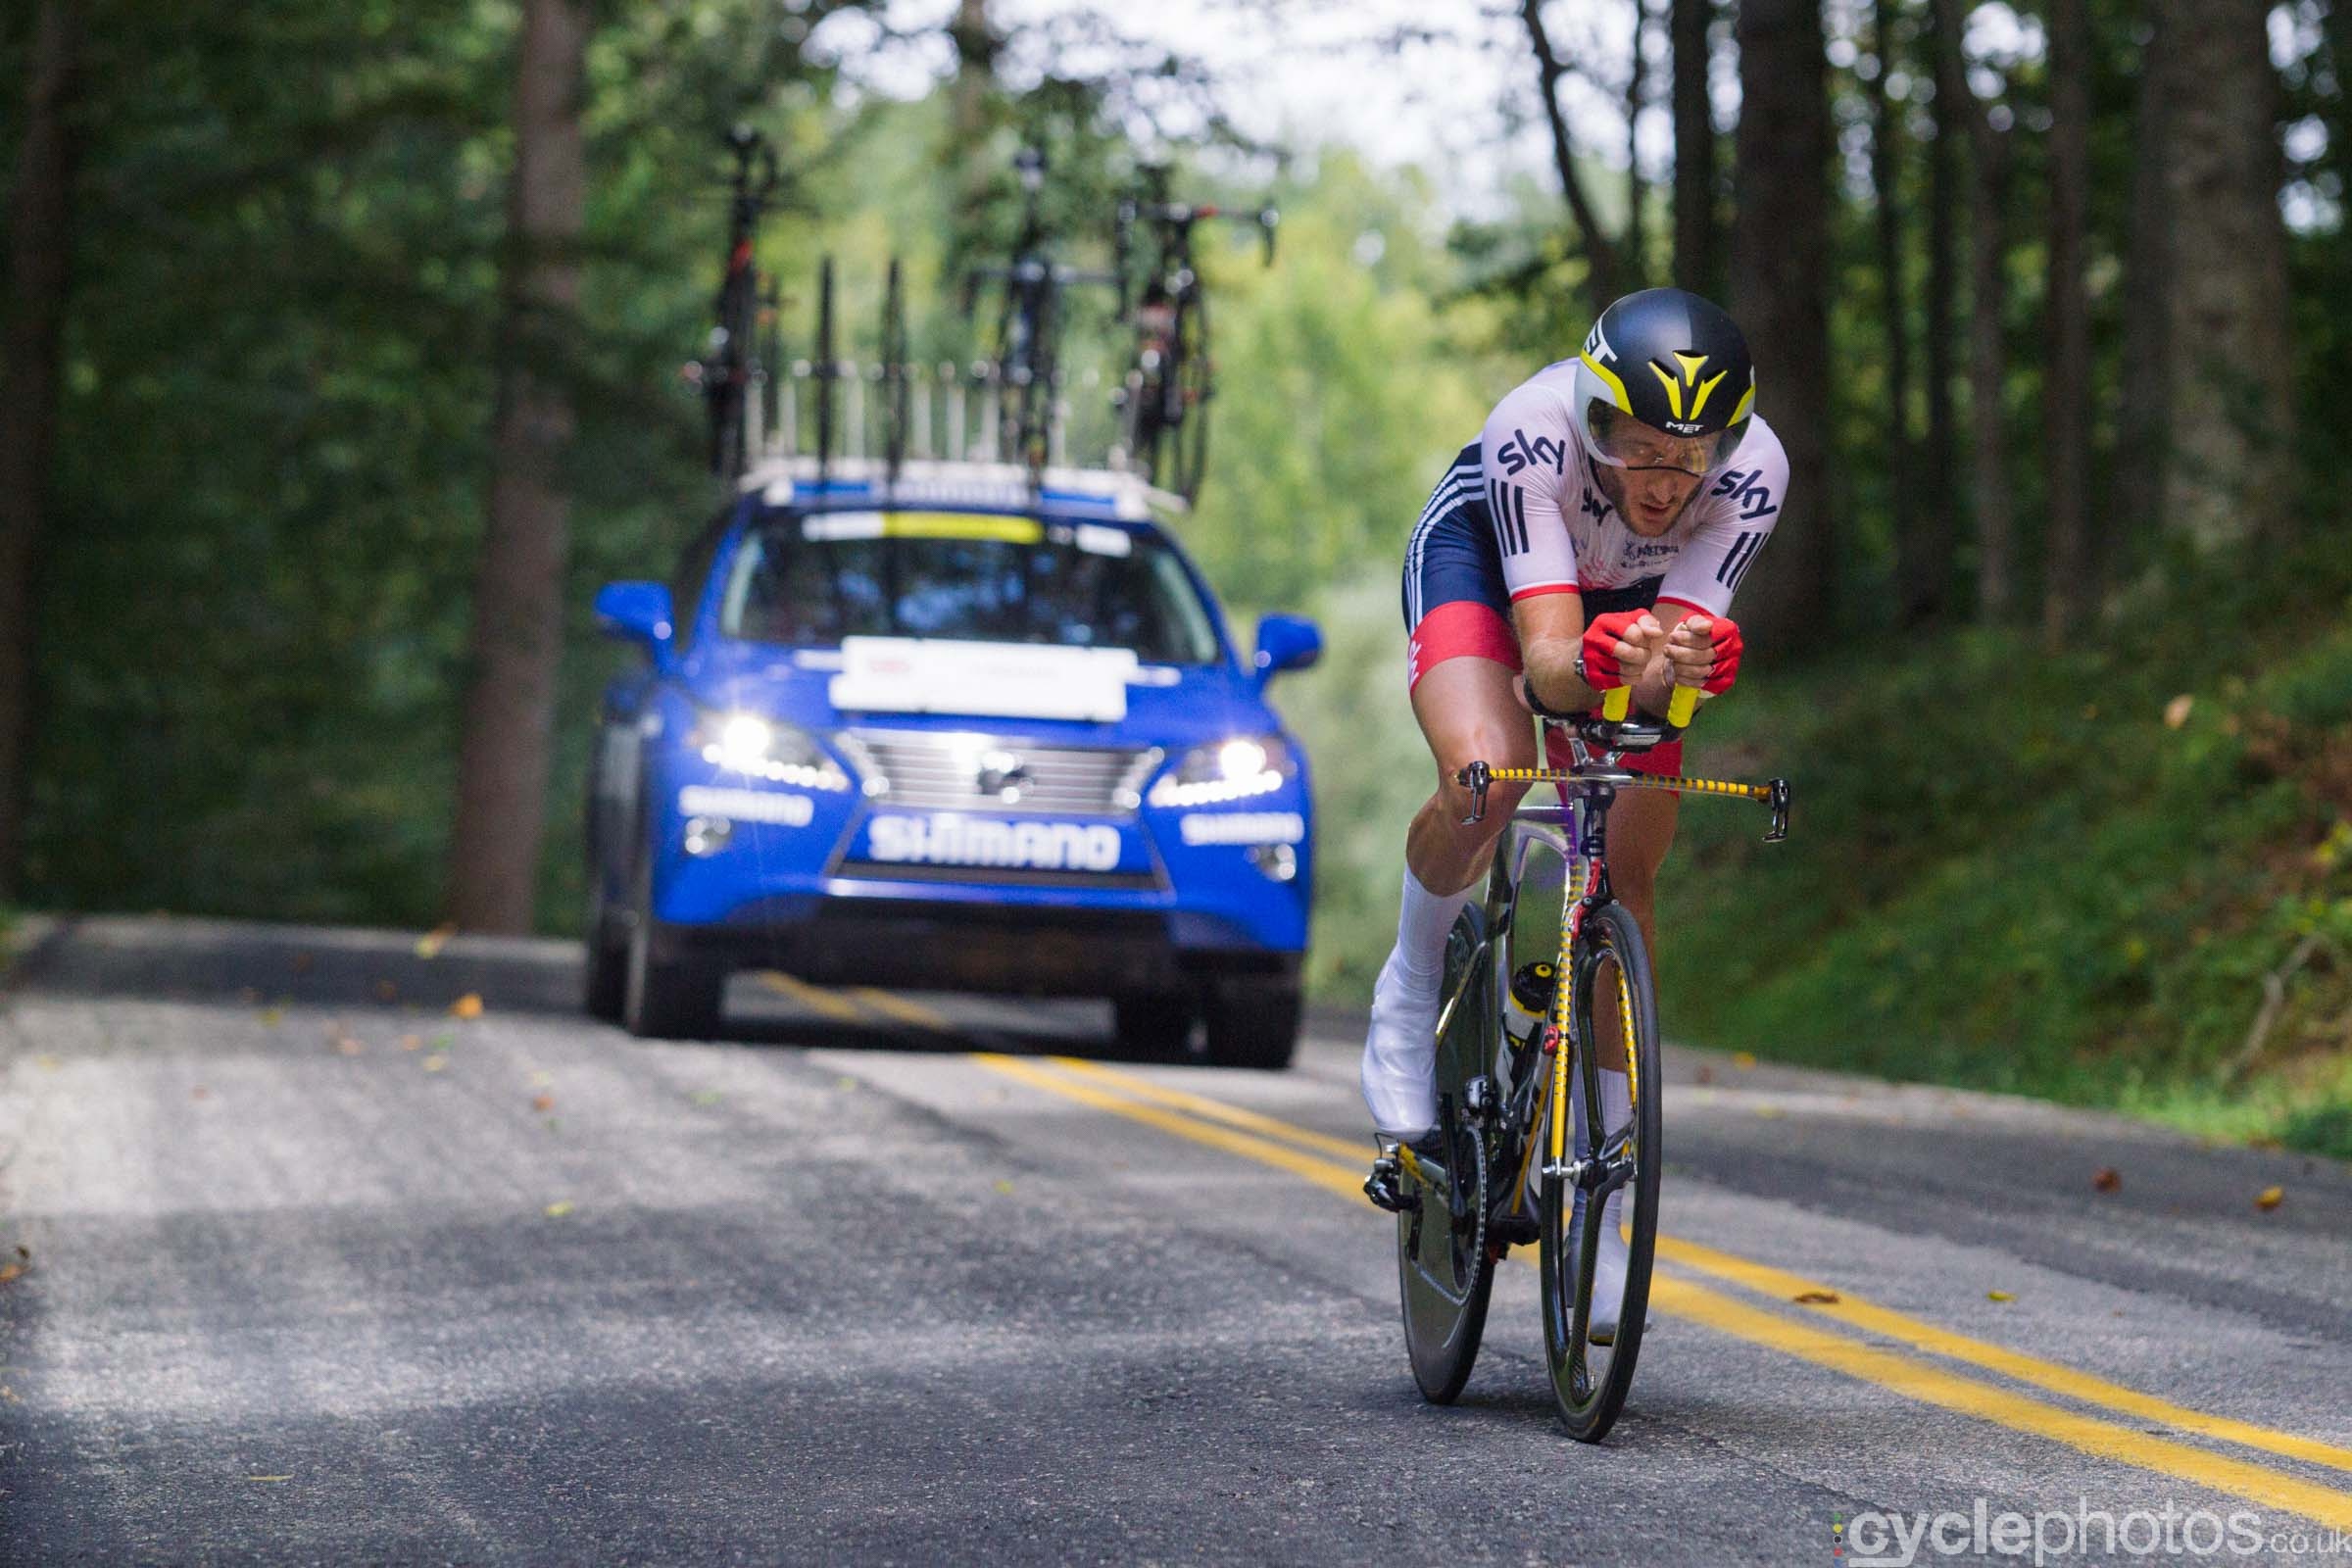 cyclephotos-world-champs-richmond-135512